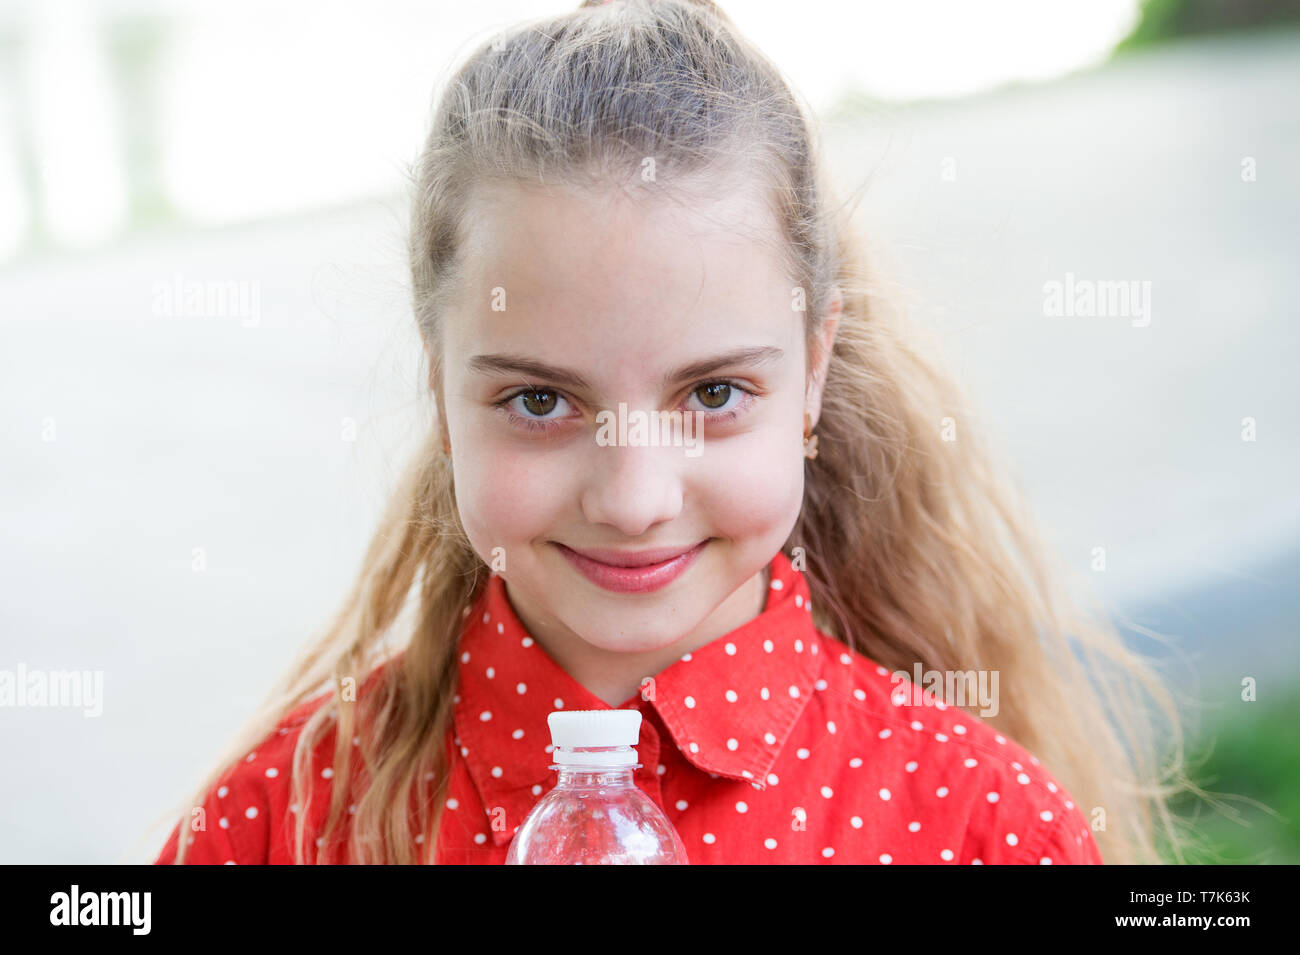 Make one more sip. Live healthy life. Healthy and hydrated. Girl care about health and water balance. Girl cute cheerful hold water bottle. Water balance concept. Drink water during summer walk. - Stock Image